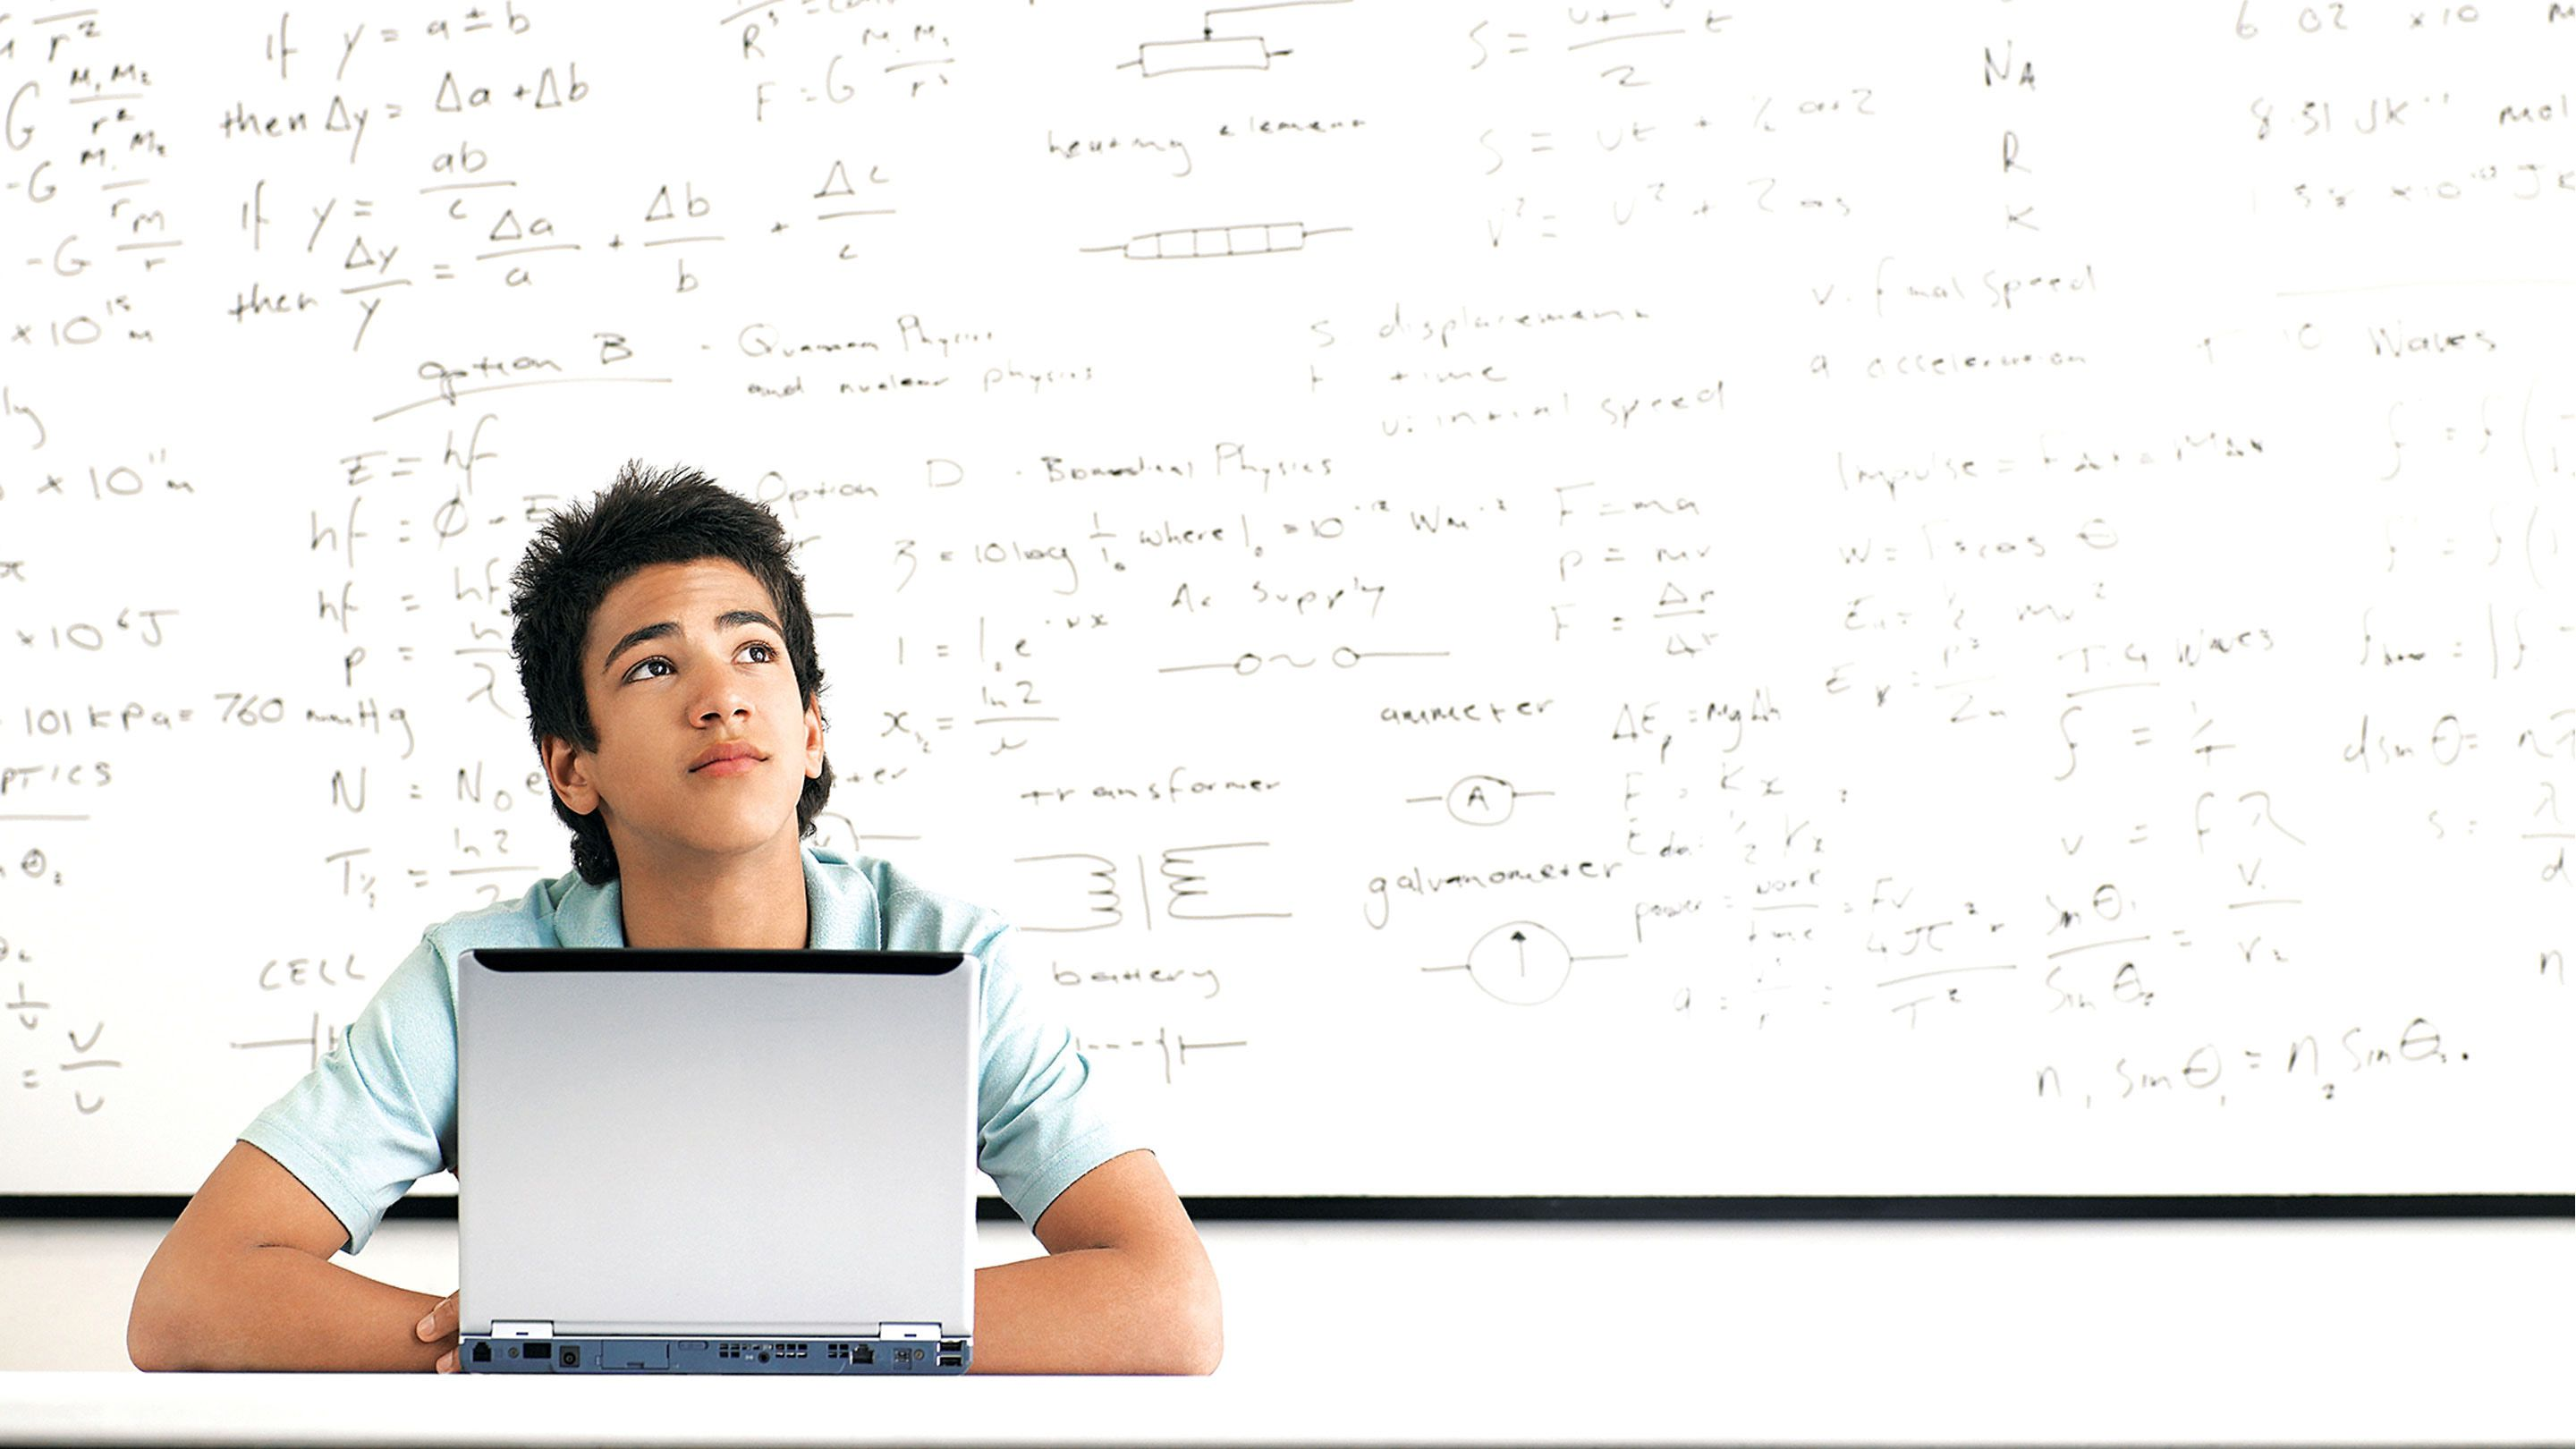 A student works at a desk in front of a whiteboard covered with equations.